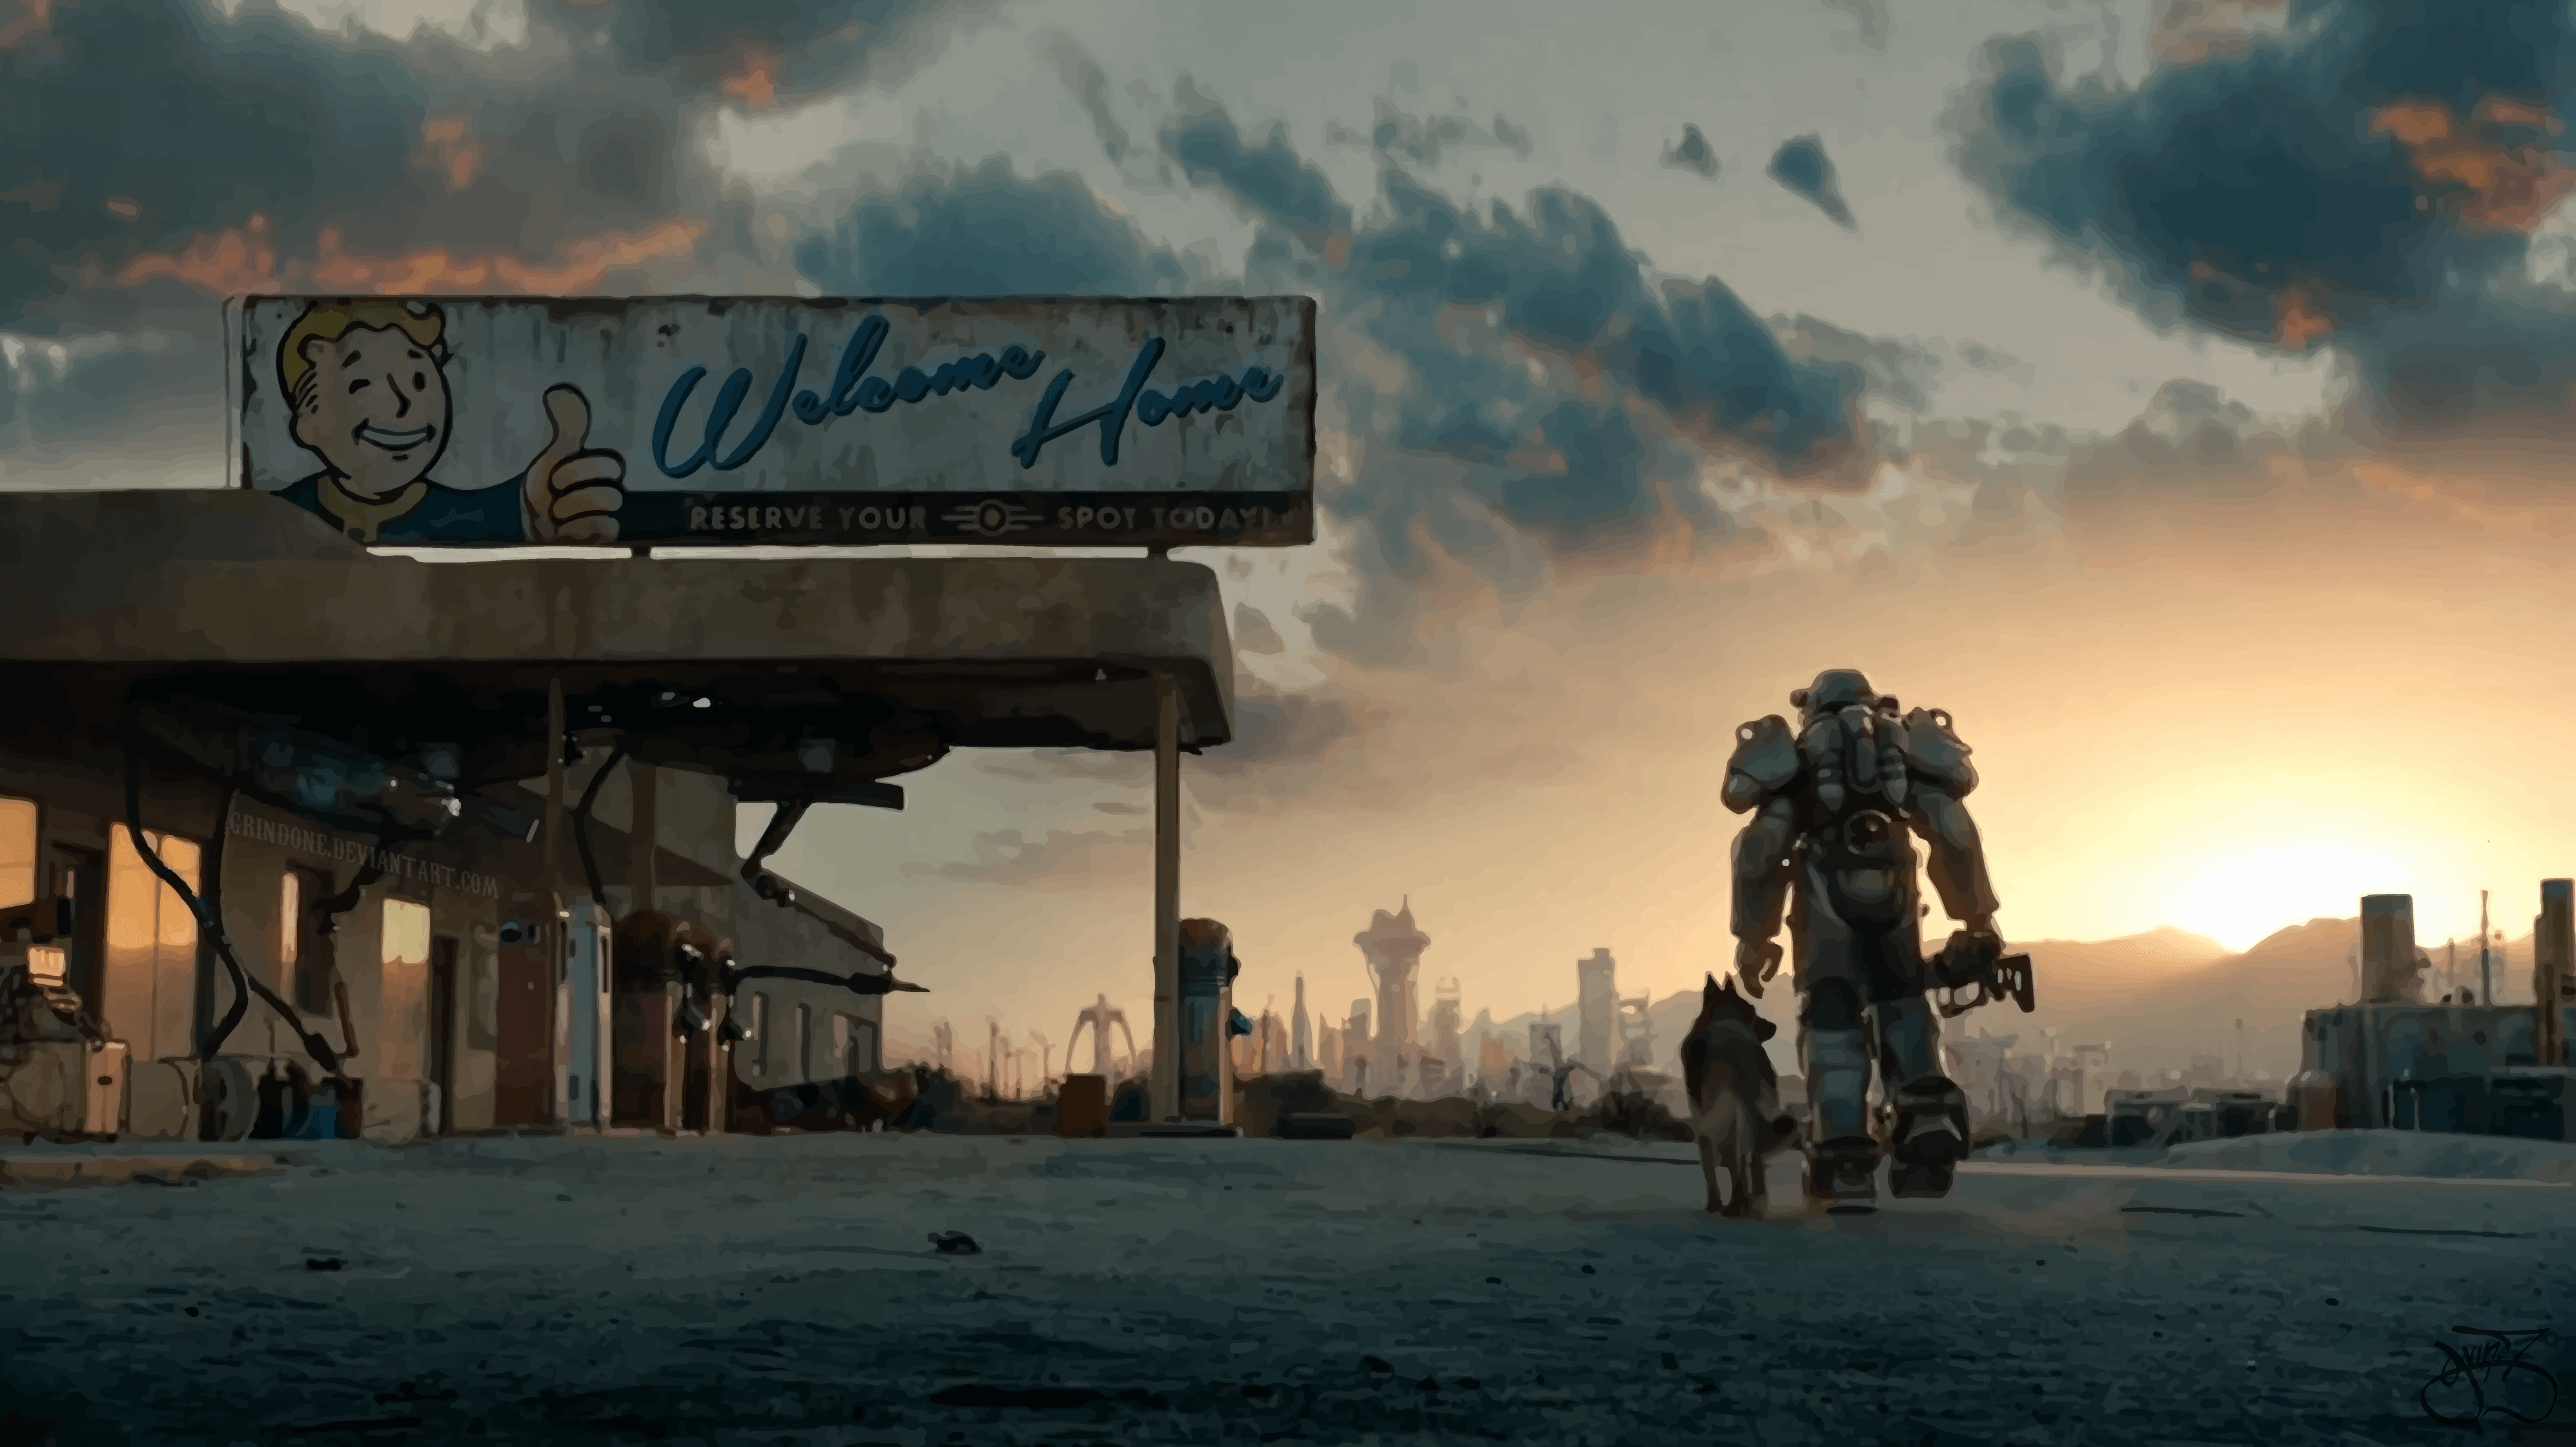 My Fallout wallpapers collection